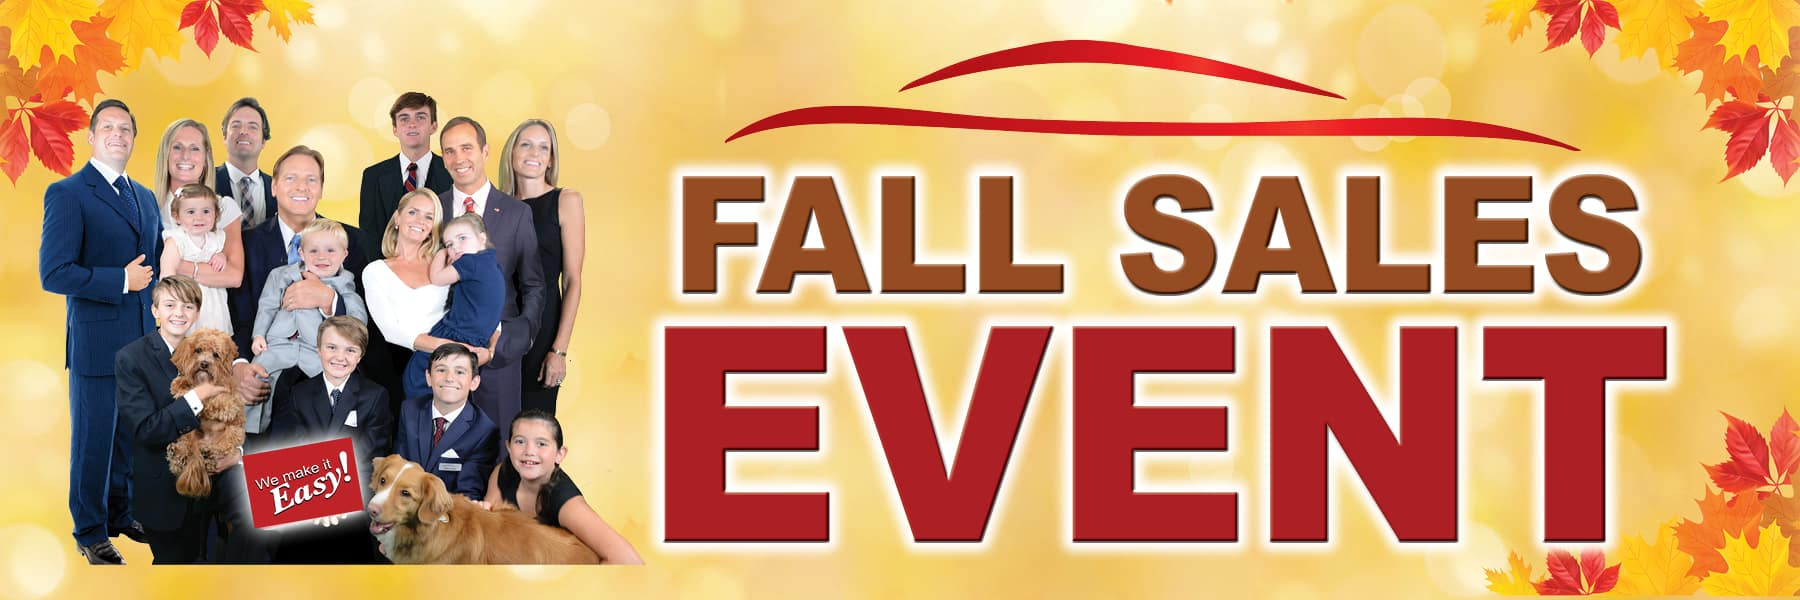 Kelly Nissan of Lynnfield Fall Sales Event